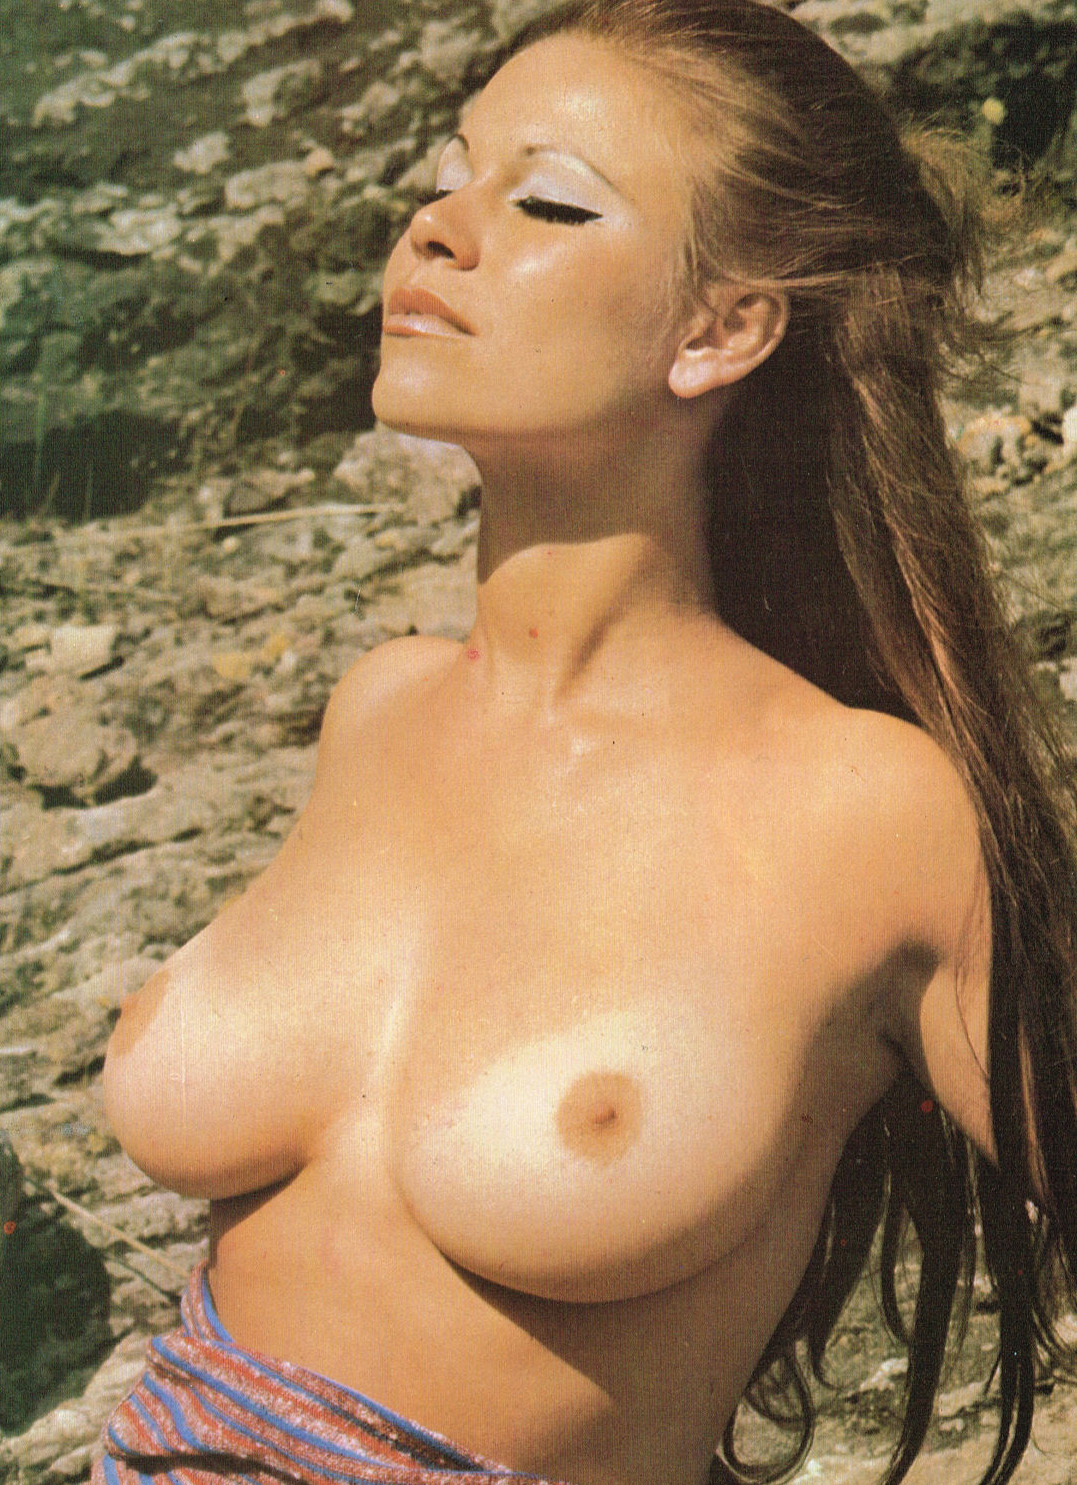 Christa Free nude. Photo - 110